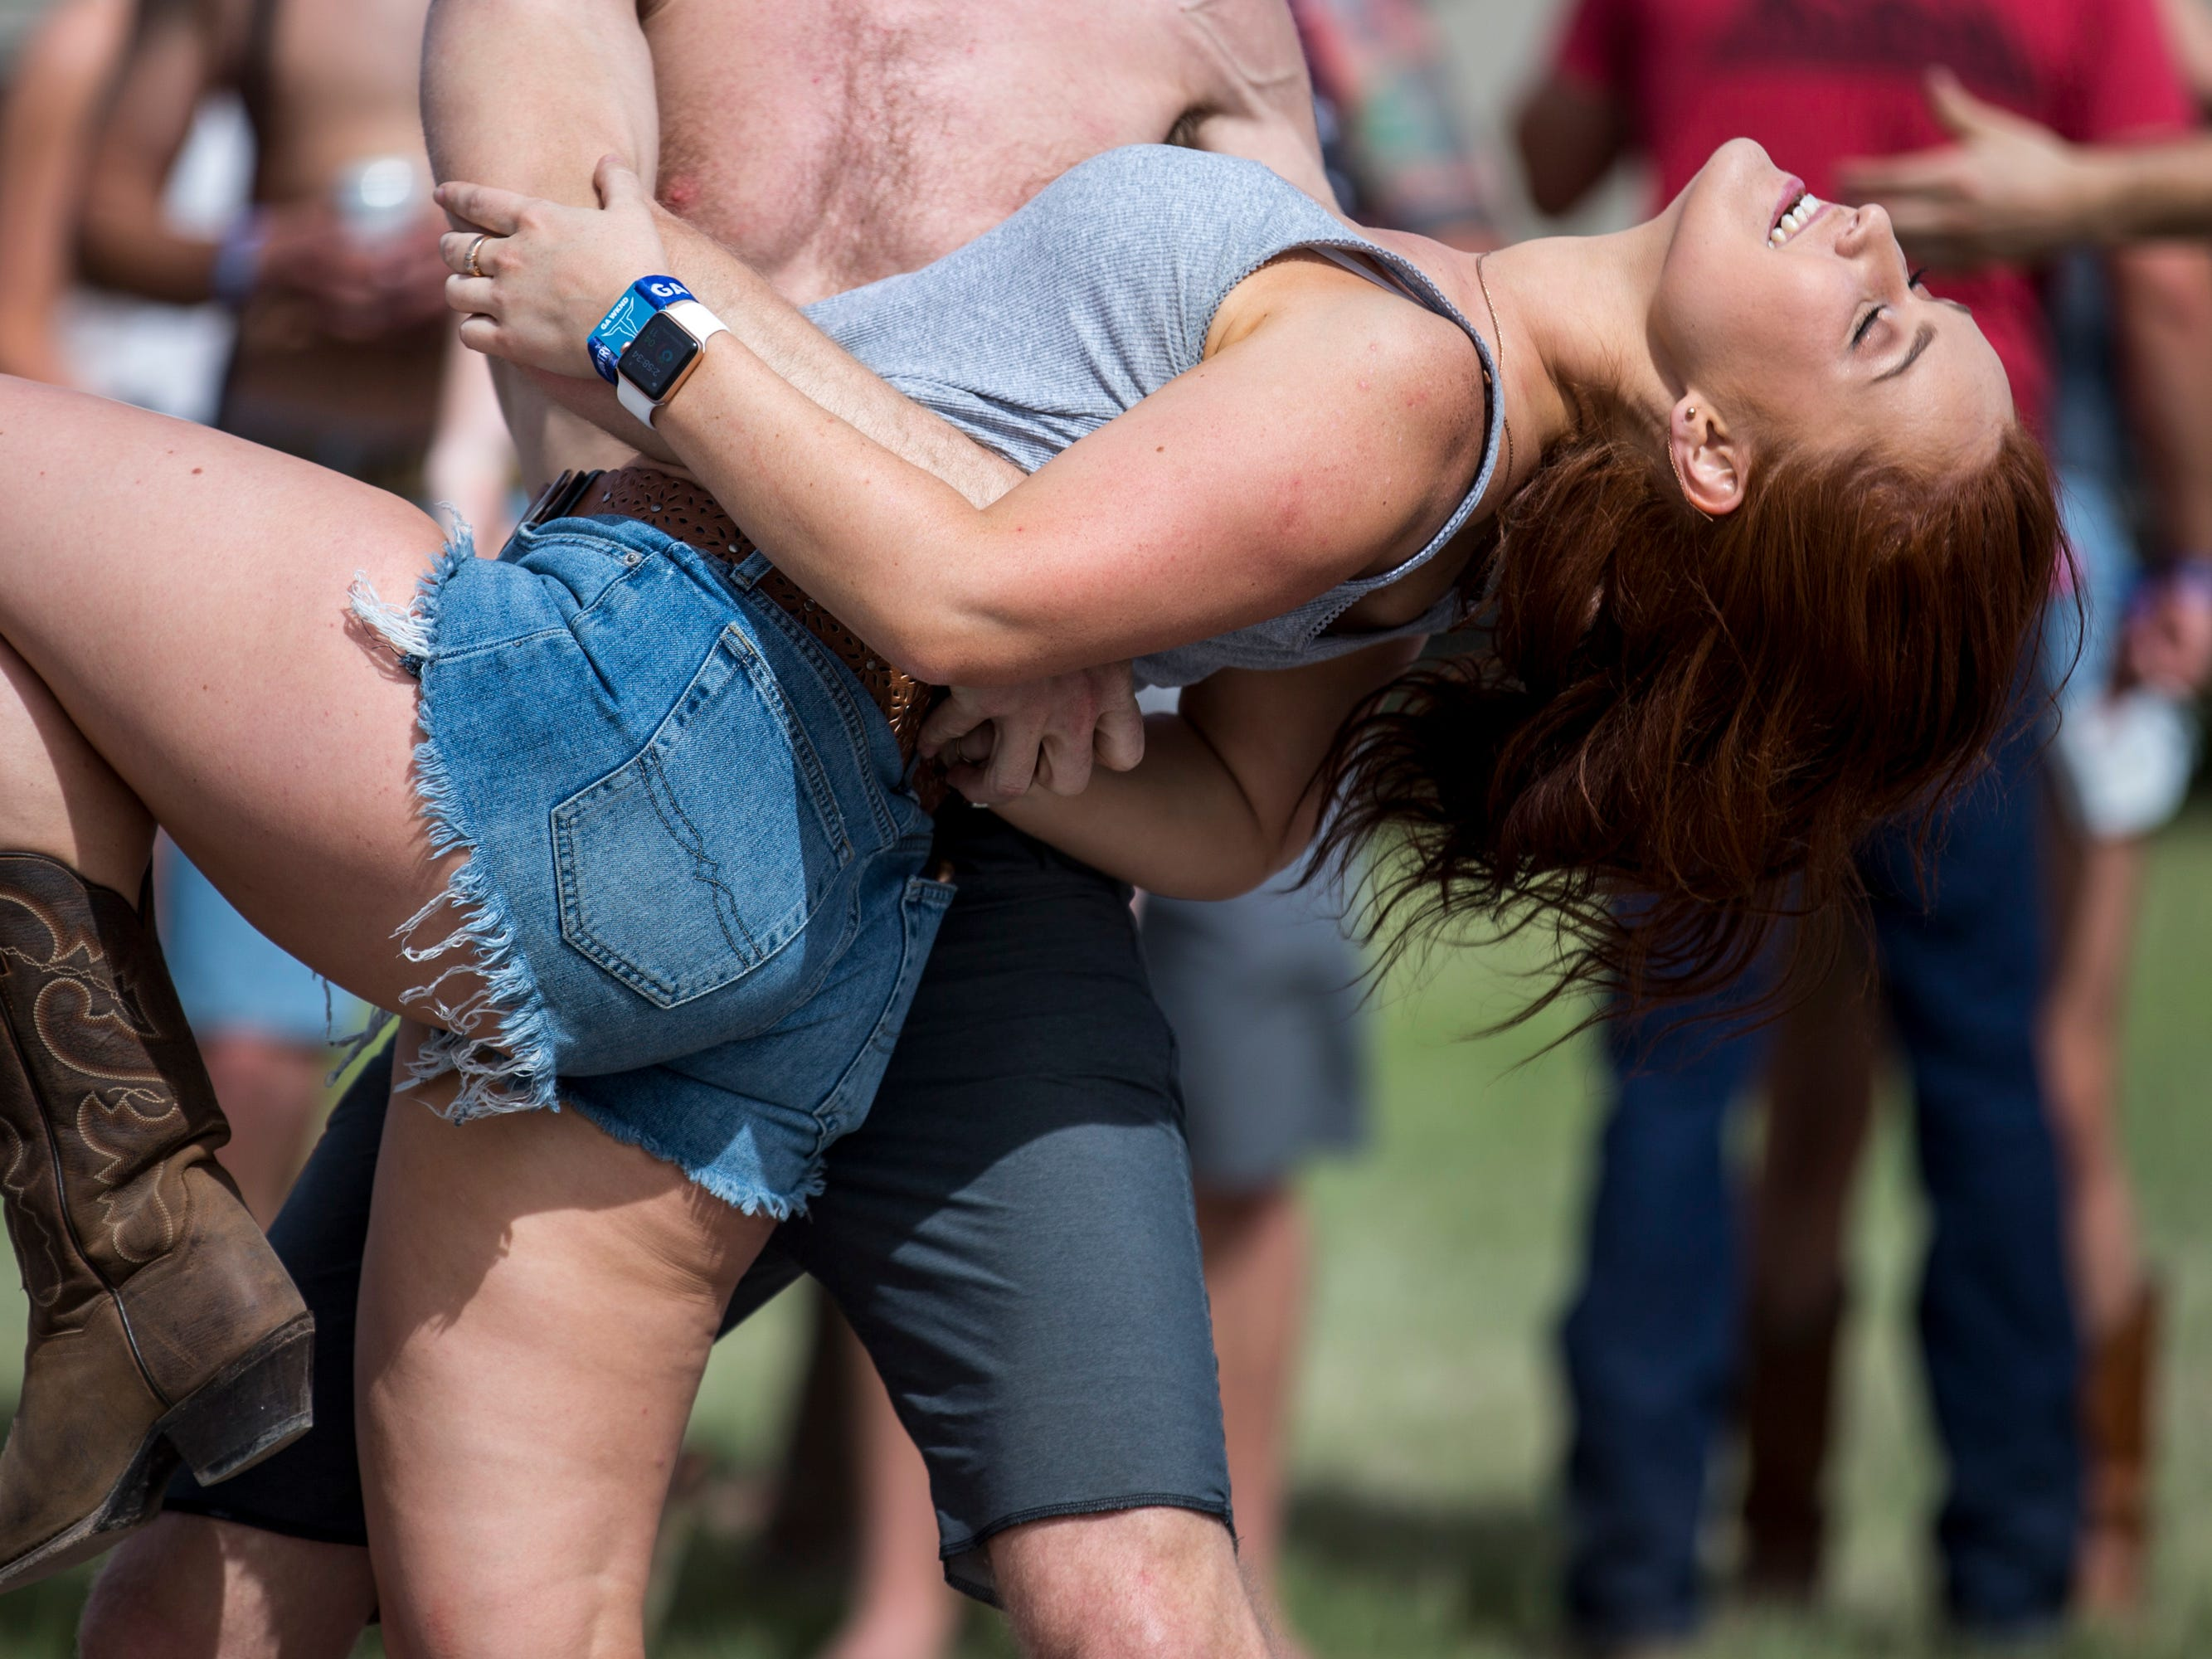 Daniel Rose dips Yuliya Ignatyeva at the Crazy Coyote campsite on April 11, 2019, during Day 1 of Country Thunder Arizona in Florence.